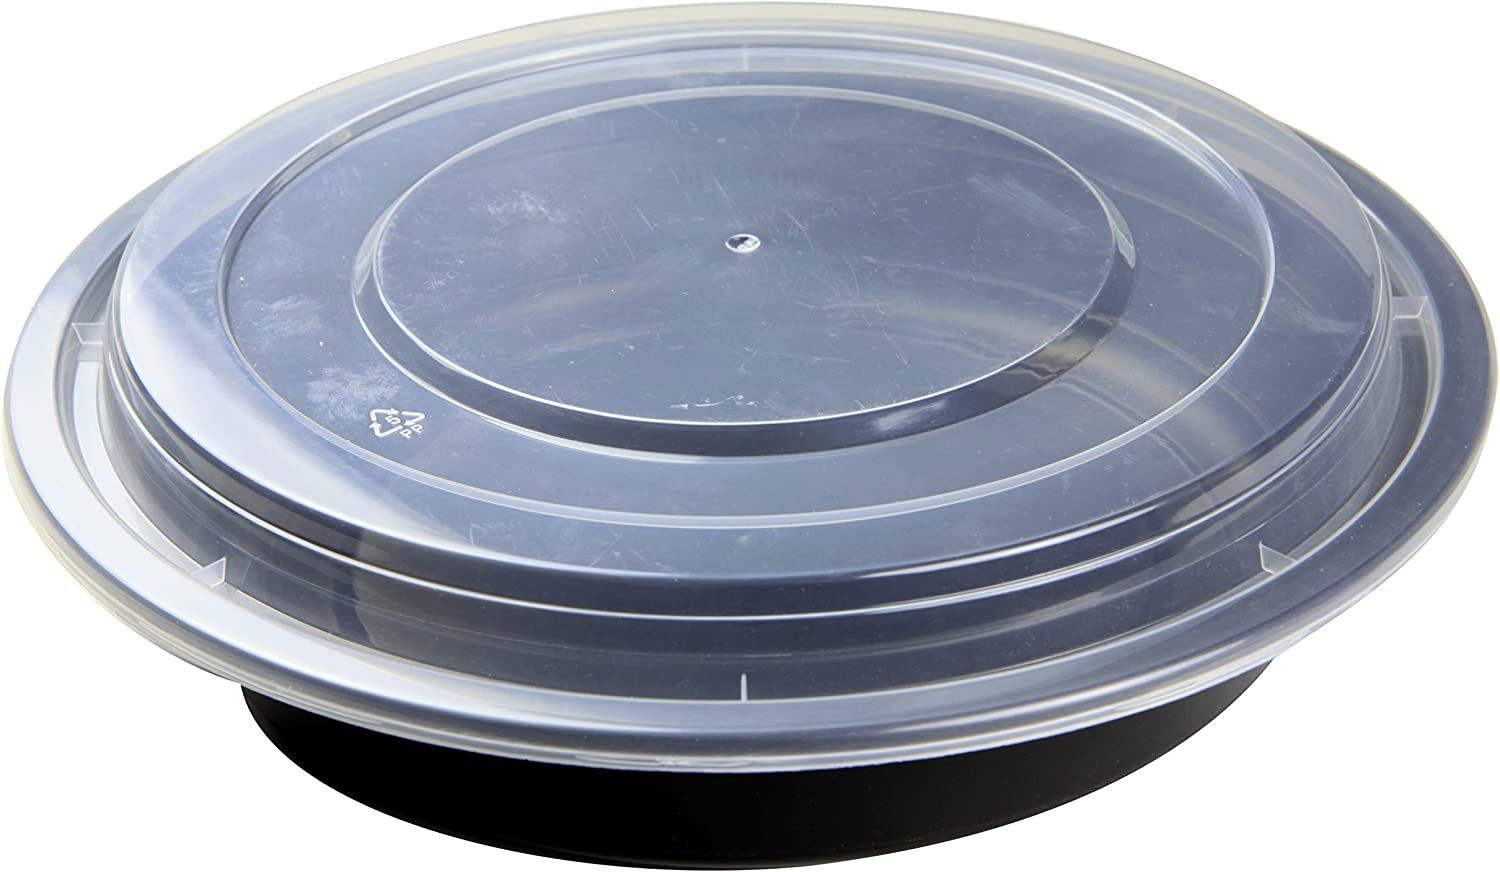 NowPak Takeout Container Black 48 Sale Special Price New York Mall oz Cs 50 3 150 - x